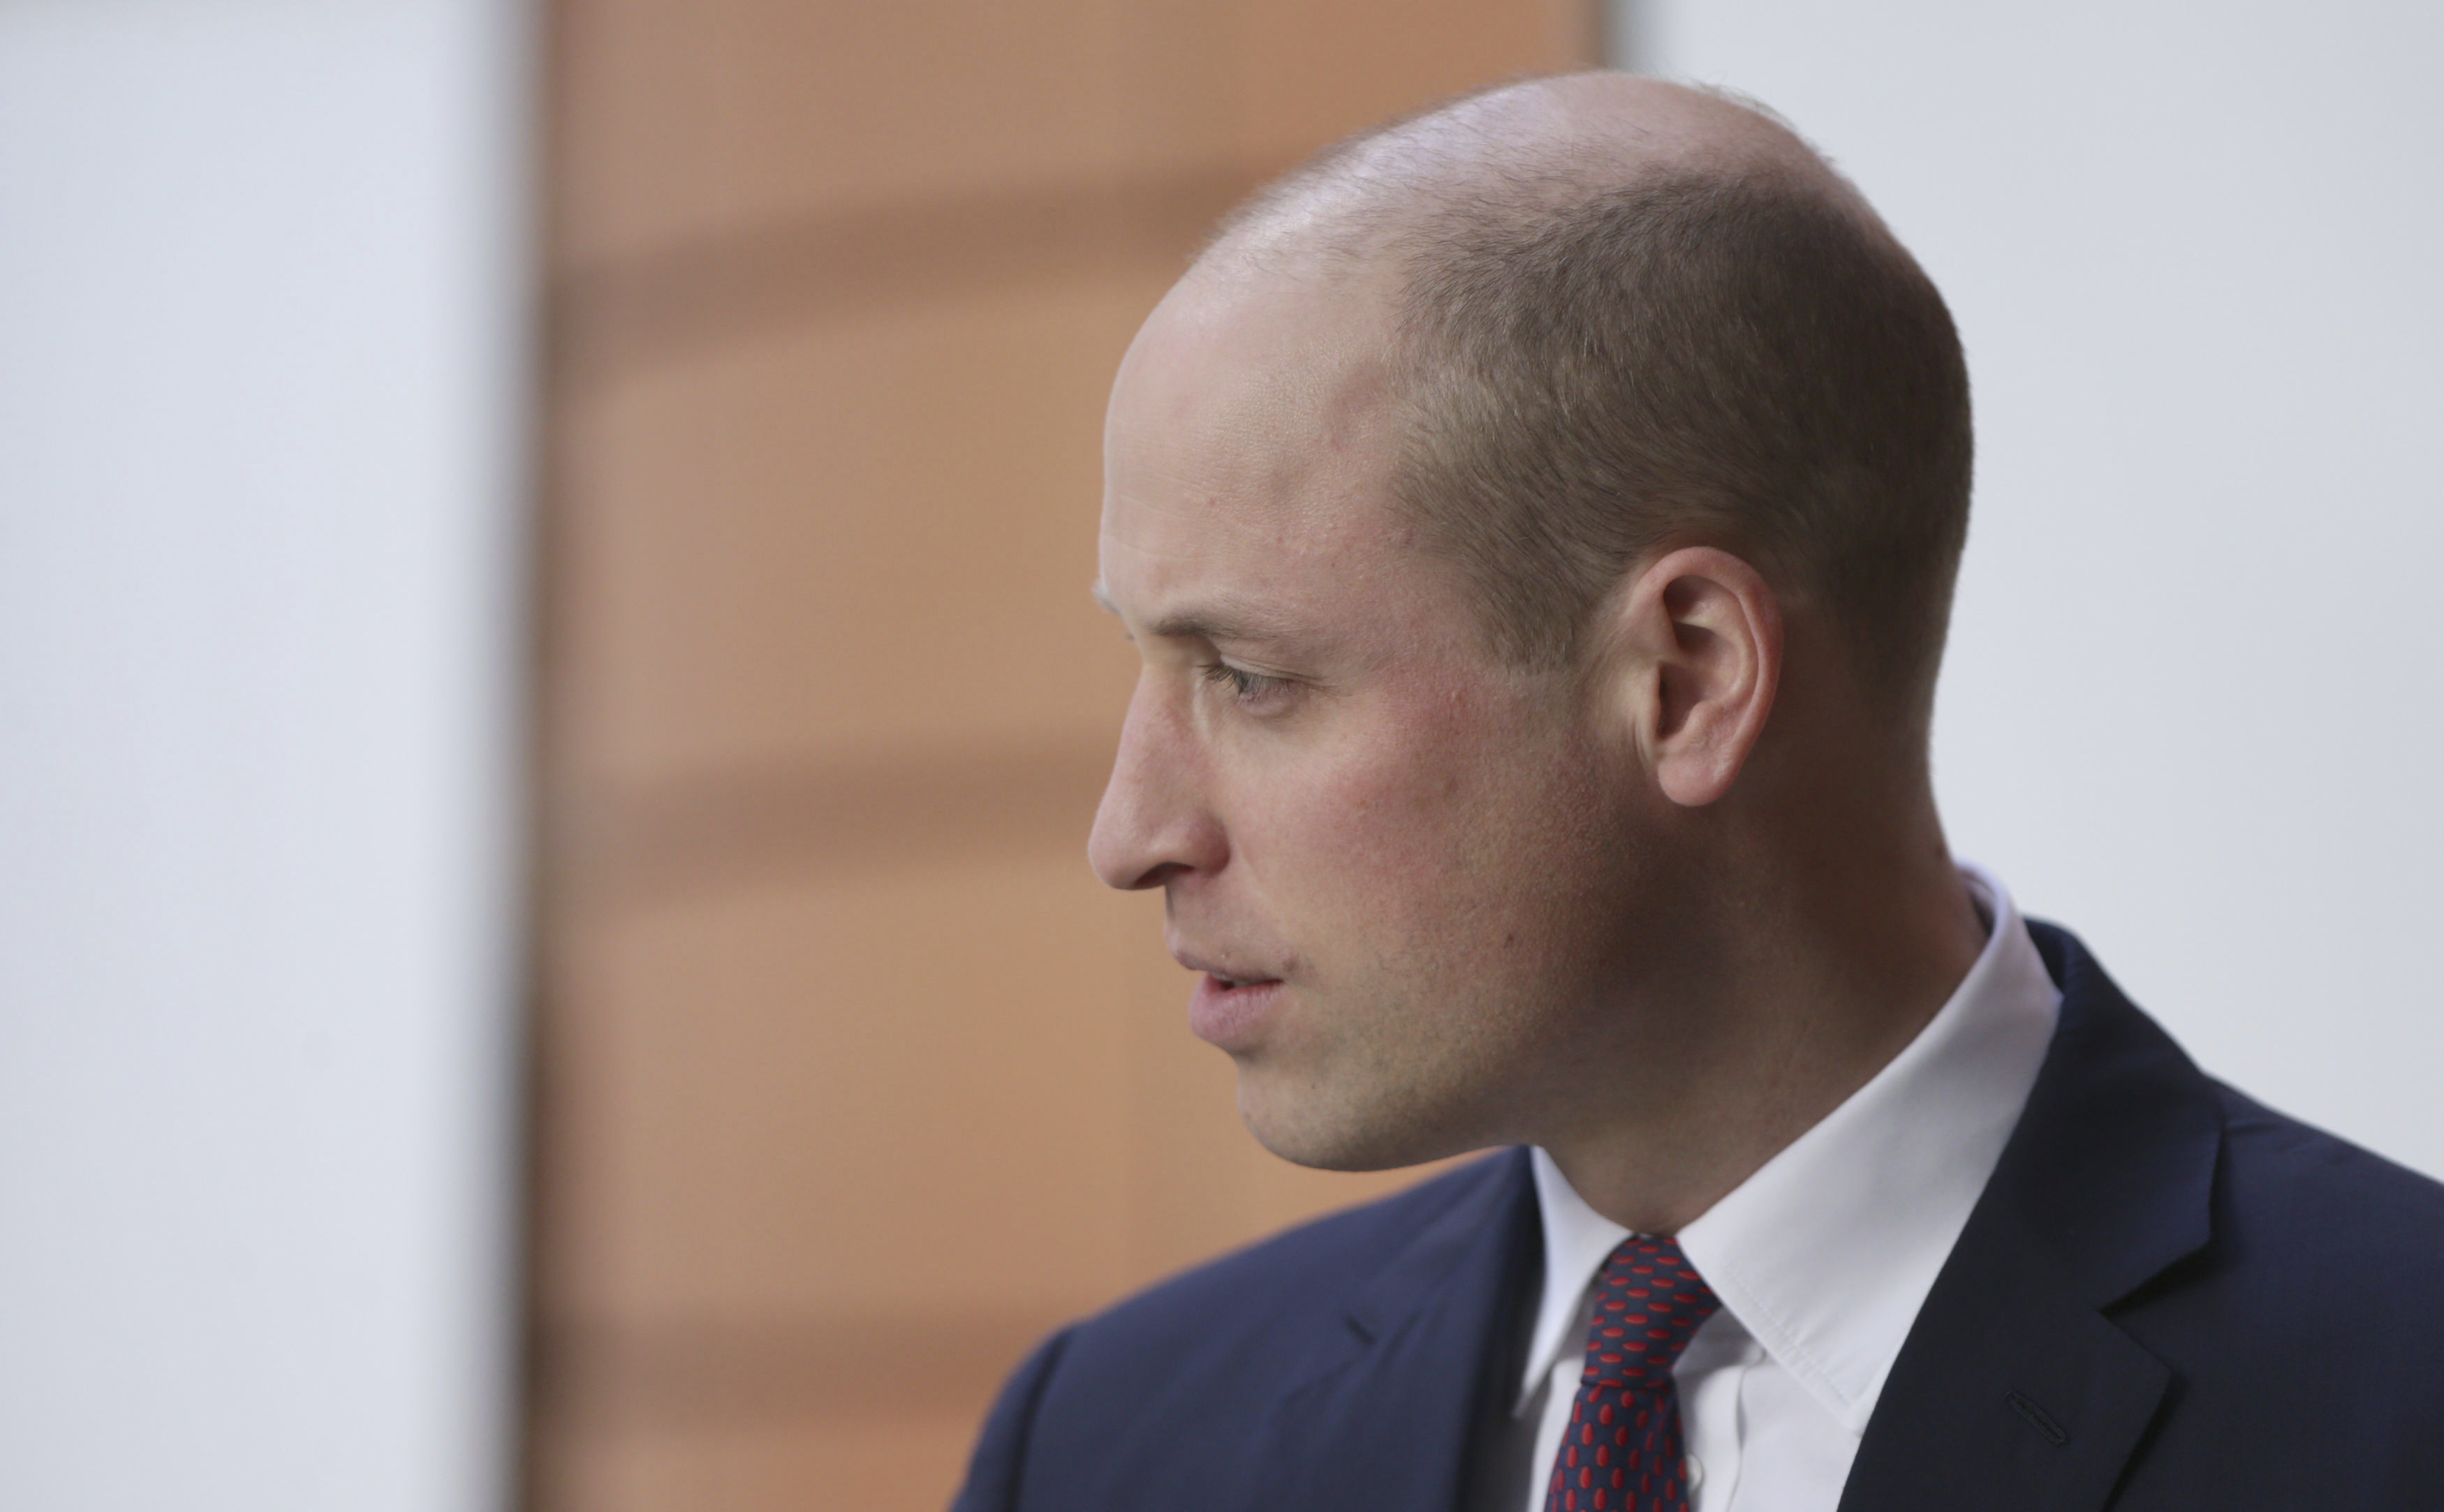 Dustin Hoffman Hair Plugs >> What Prince William Could Have Done Instead Of Shaving His Head Nz